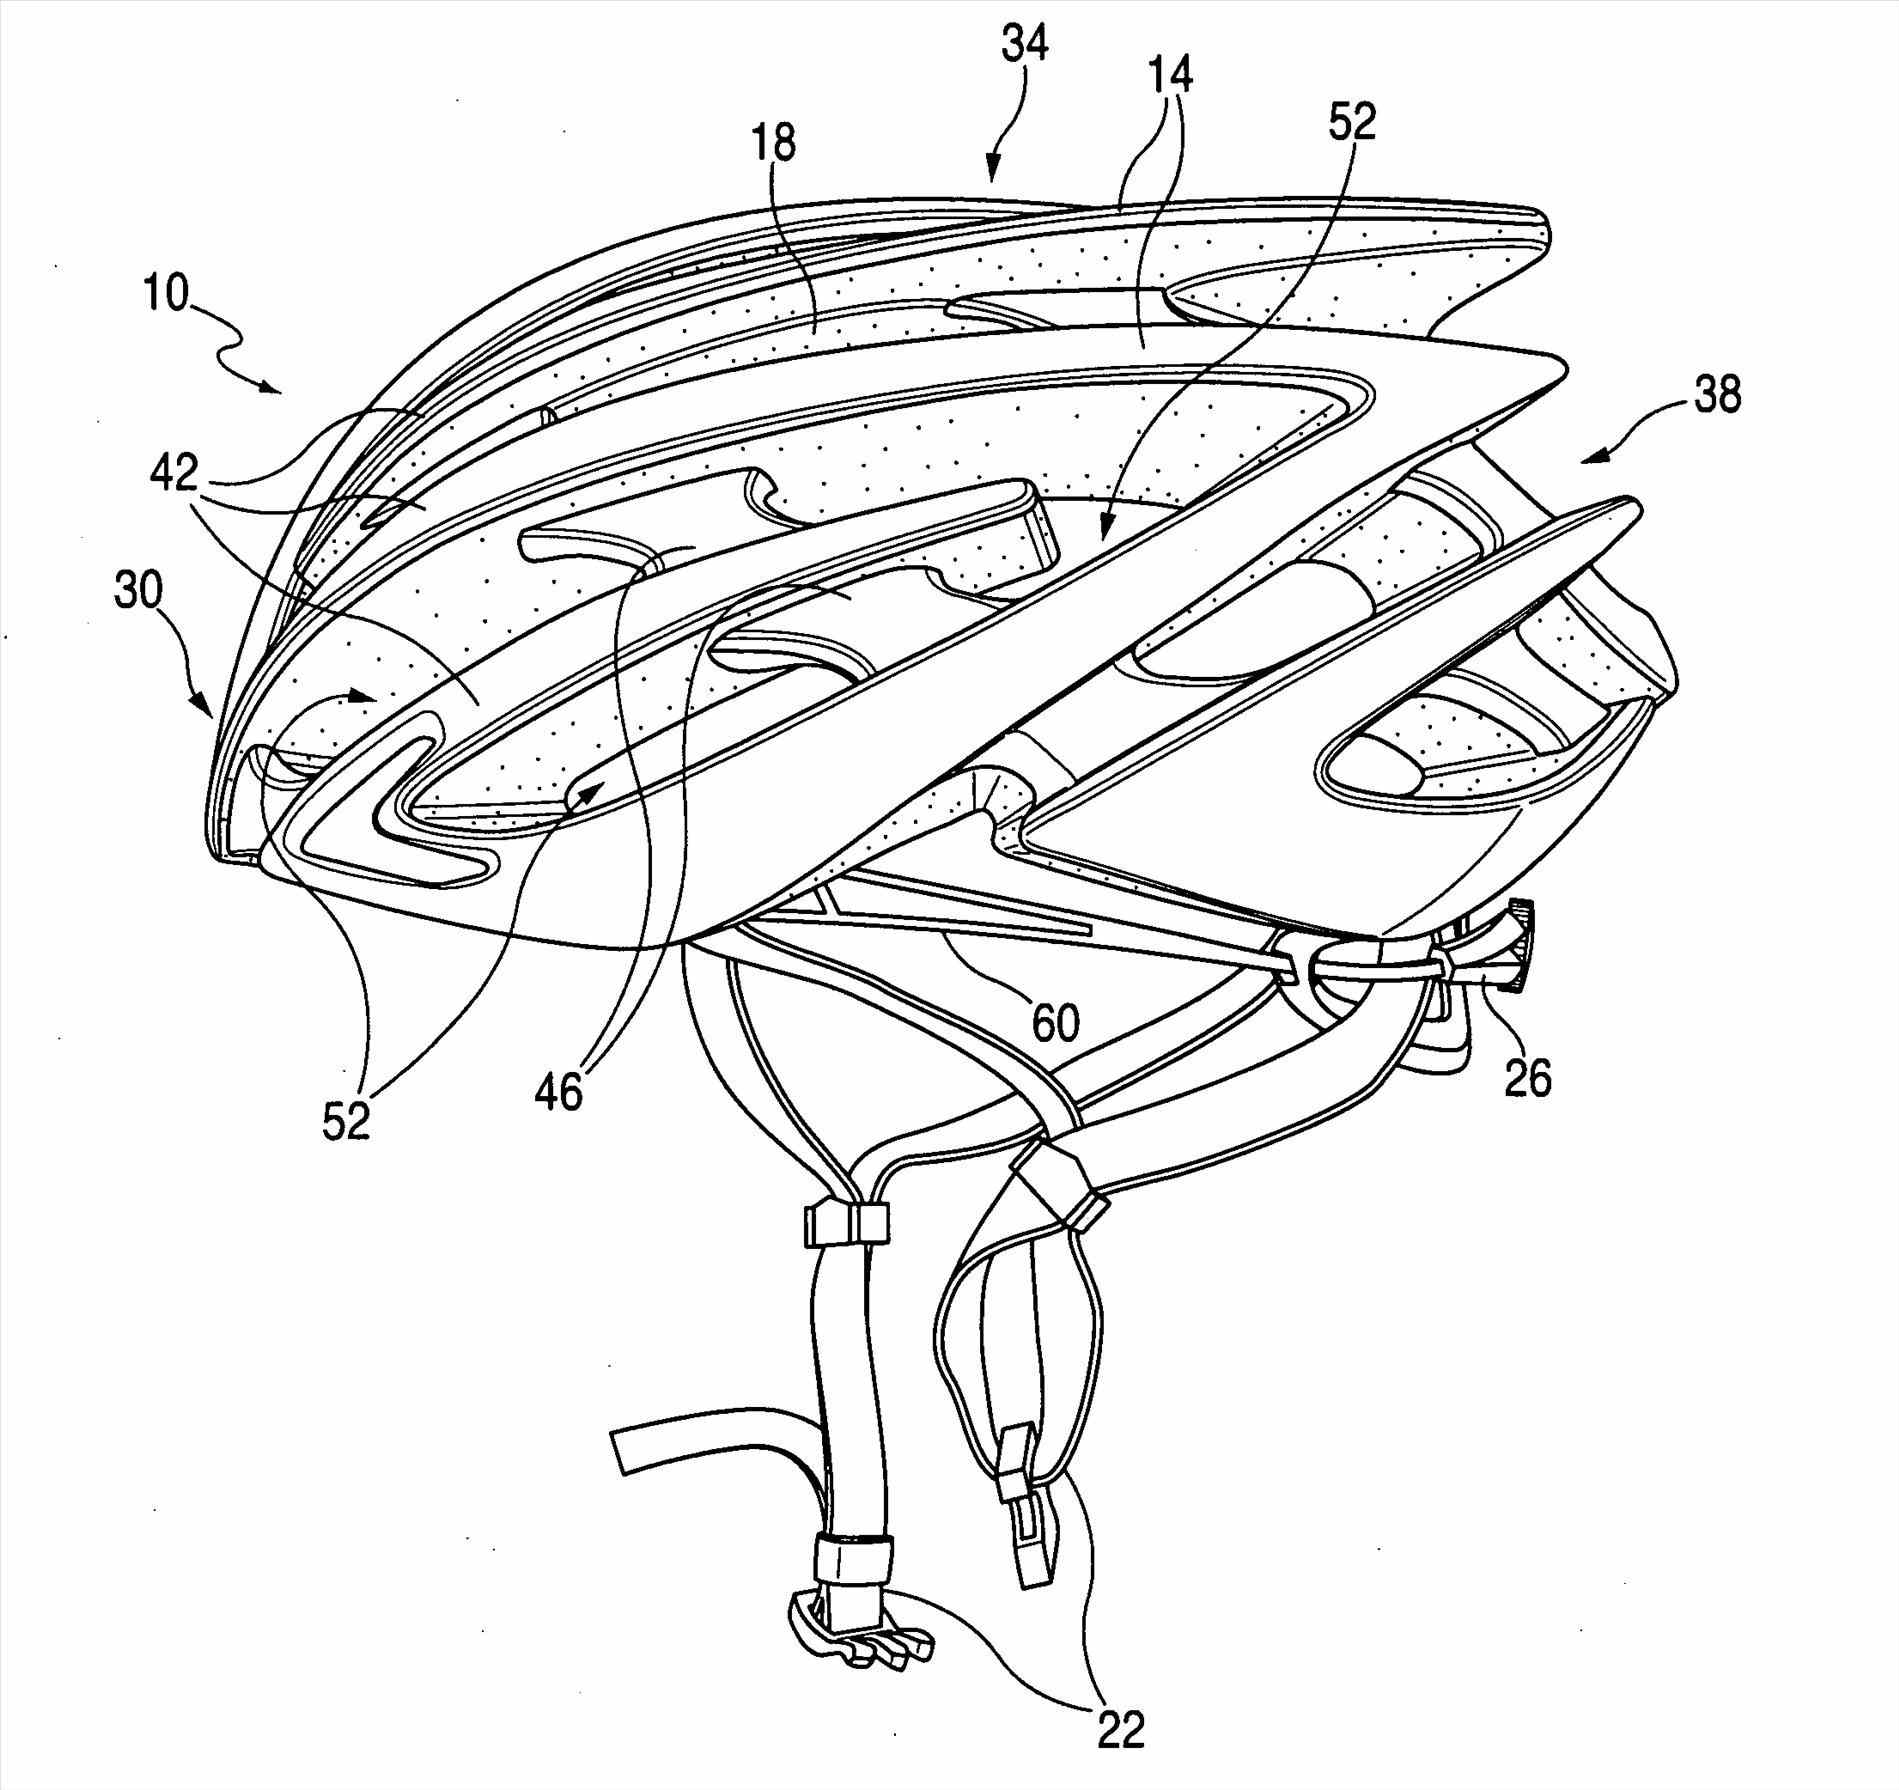 Dirt Bike Helmet Drawing At Free For Personal Use Bicycle Anatomy Diagram 1899x1790 Us Protective With Internal Emejing Coloring Page